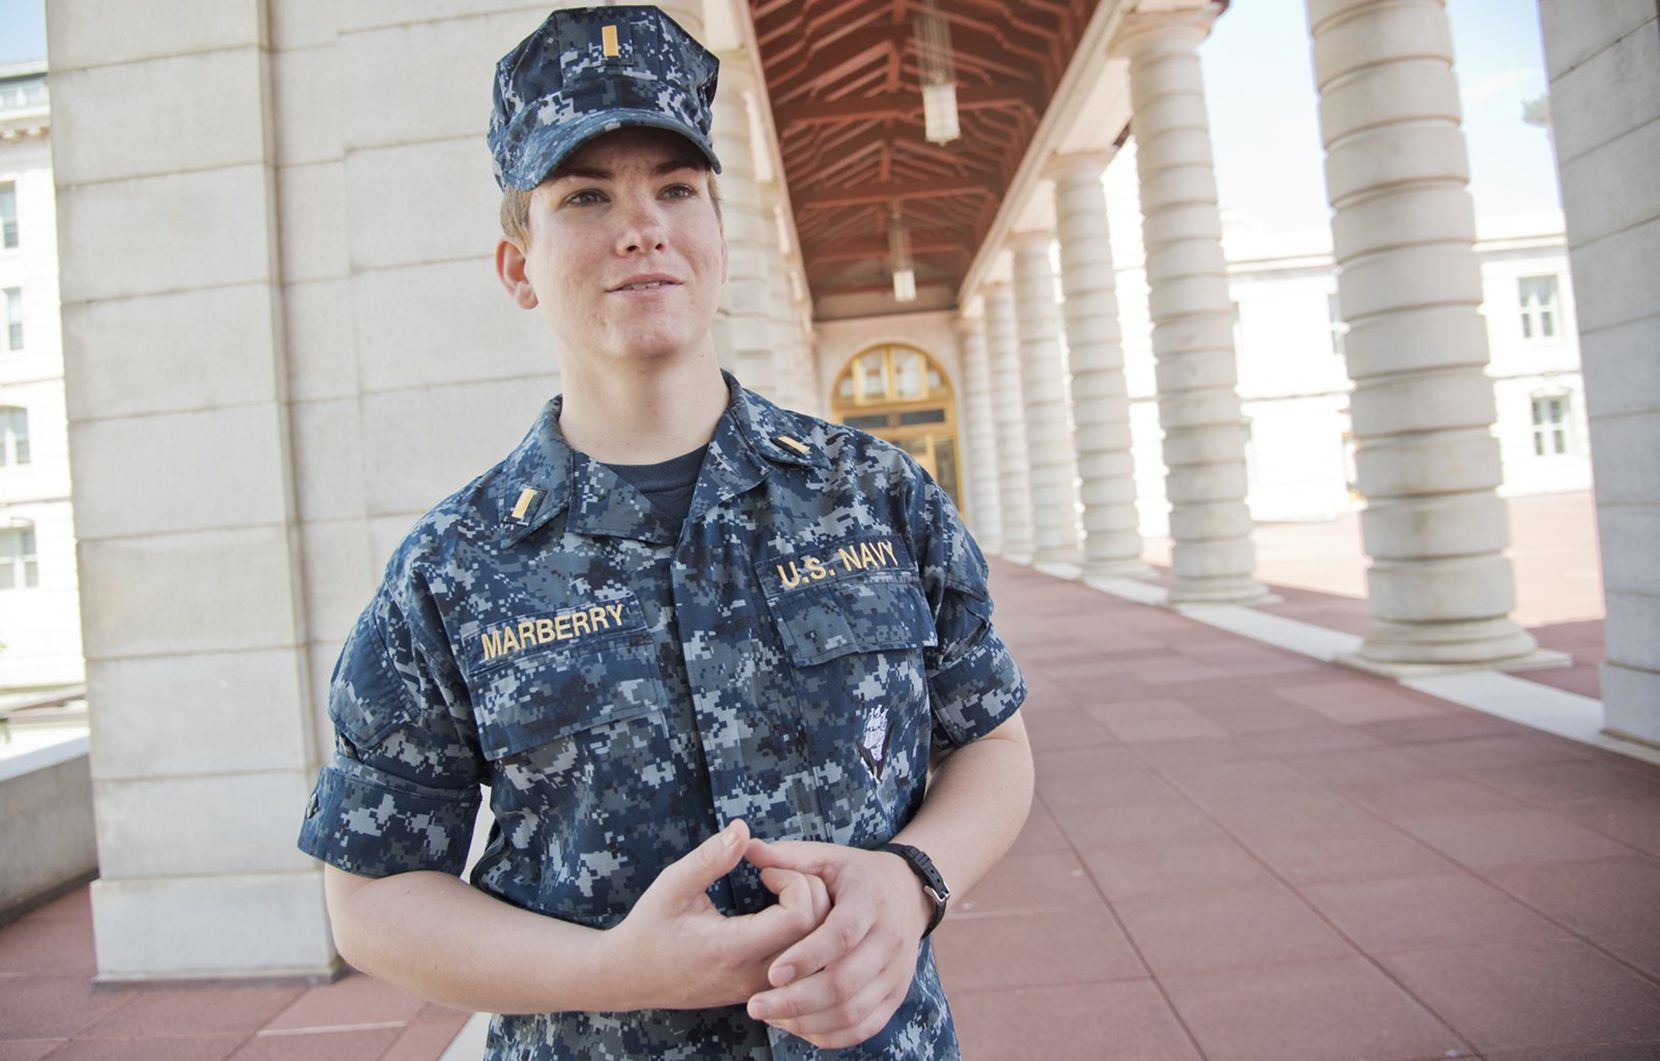 Ensign Ali Marberry, shown at the United States Naval Academy in 2016, was slated to start fighter pilot training when she came out as transgender and was disqualified from flight school. A policy change announced the following month by Defense Secretary Ash Carter lifted the U.S. military's ban on transgender troops.